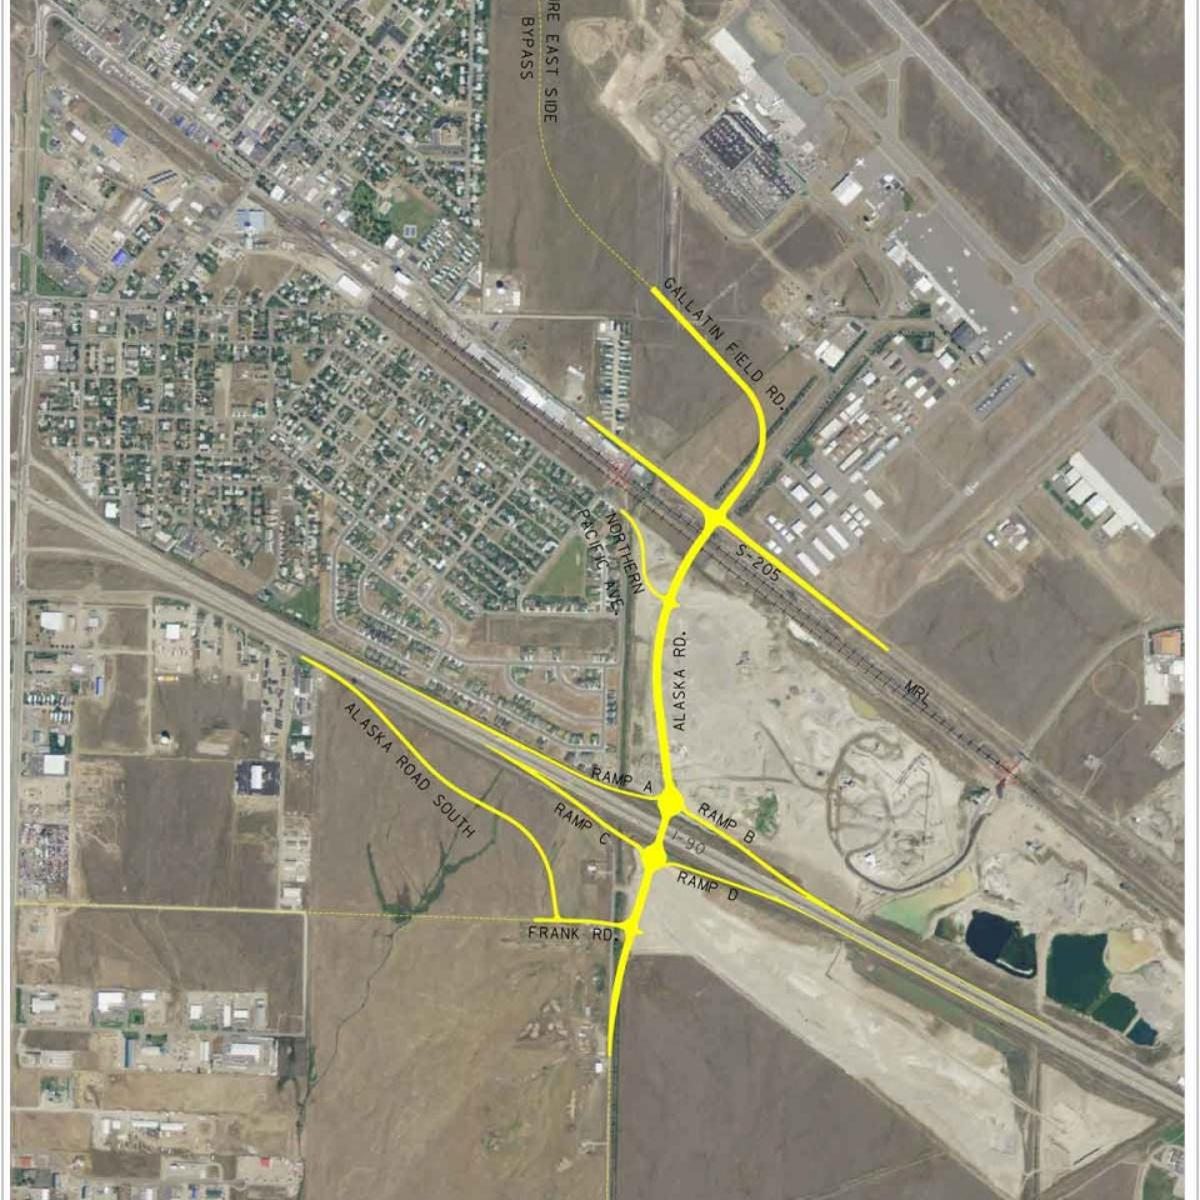 Gallatin County Commission approves $2 million I-90 exit bond deal on us 30 road map, i-90 today, interstate 90 wisconsin map, sr 99 road map, route 20 road map, i90 road map, us 20 road map, i 10 road map, highway 50 road map, i-90 corridor, i-70 road map, i-57 road map, i-72 road map, i-93 boston map, interstate 5 road map, route 90 map, i 90 tollway map, i-90 traffic cameras, i-90 weather conditions, pennsylvania turnpike road map,